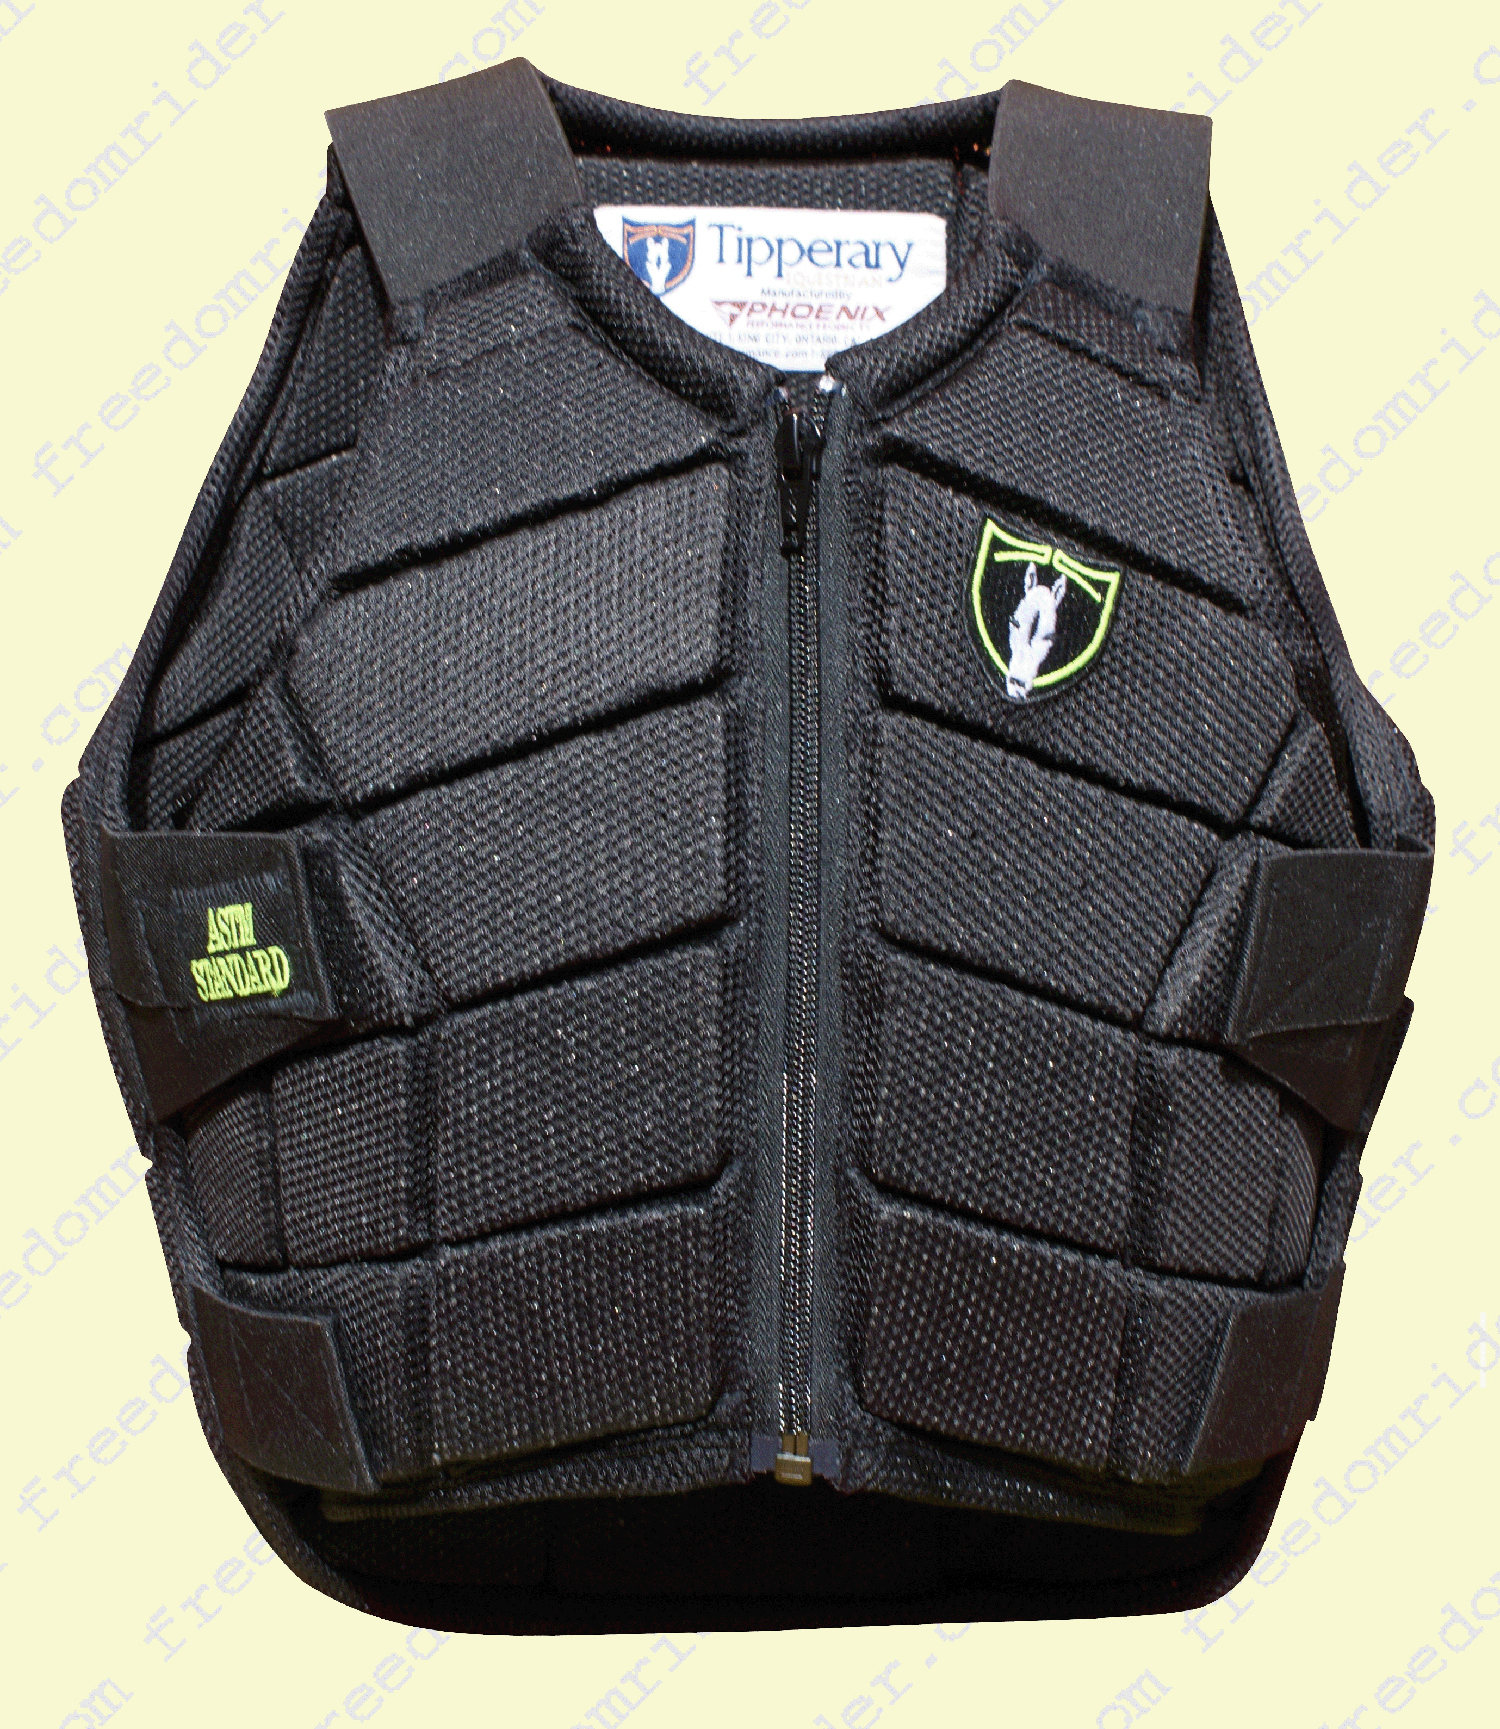 Tipperary Competitor II Body Protector